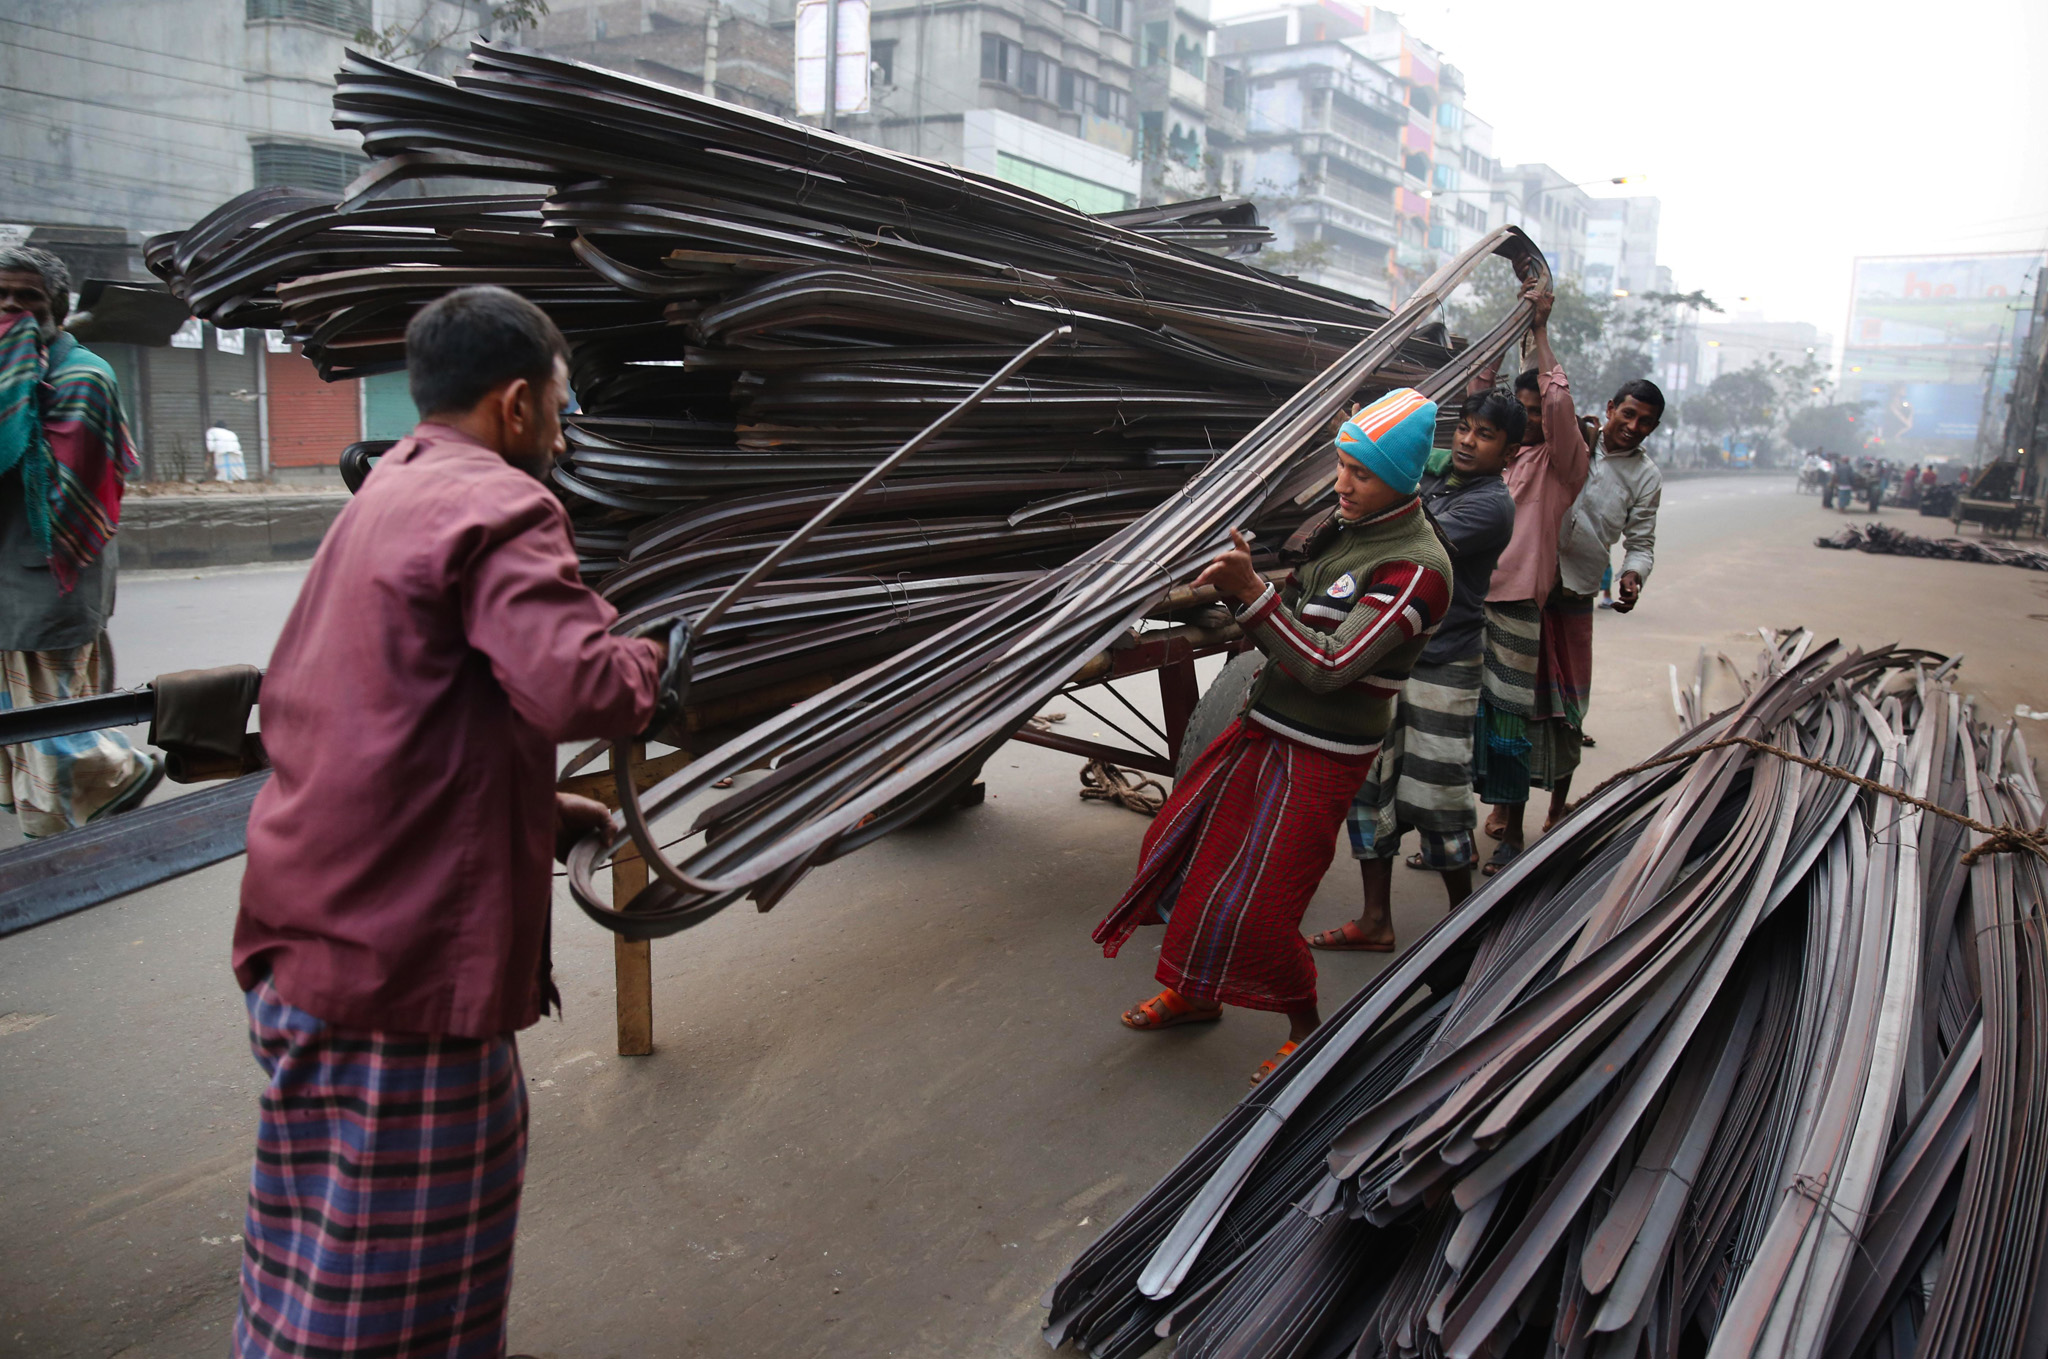 Workers unload angle irons used in building construction in Dhaka, Bangladesh.